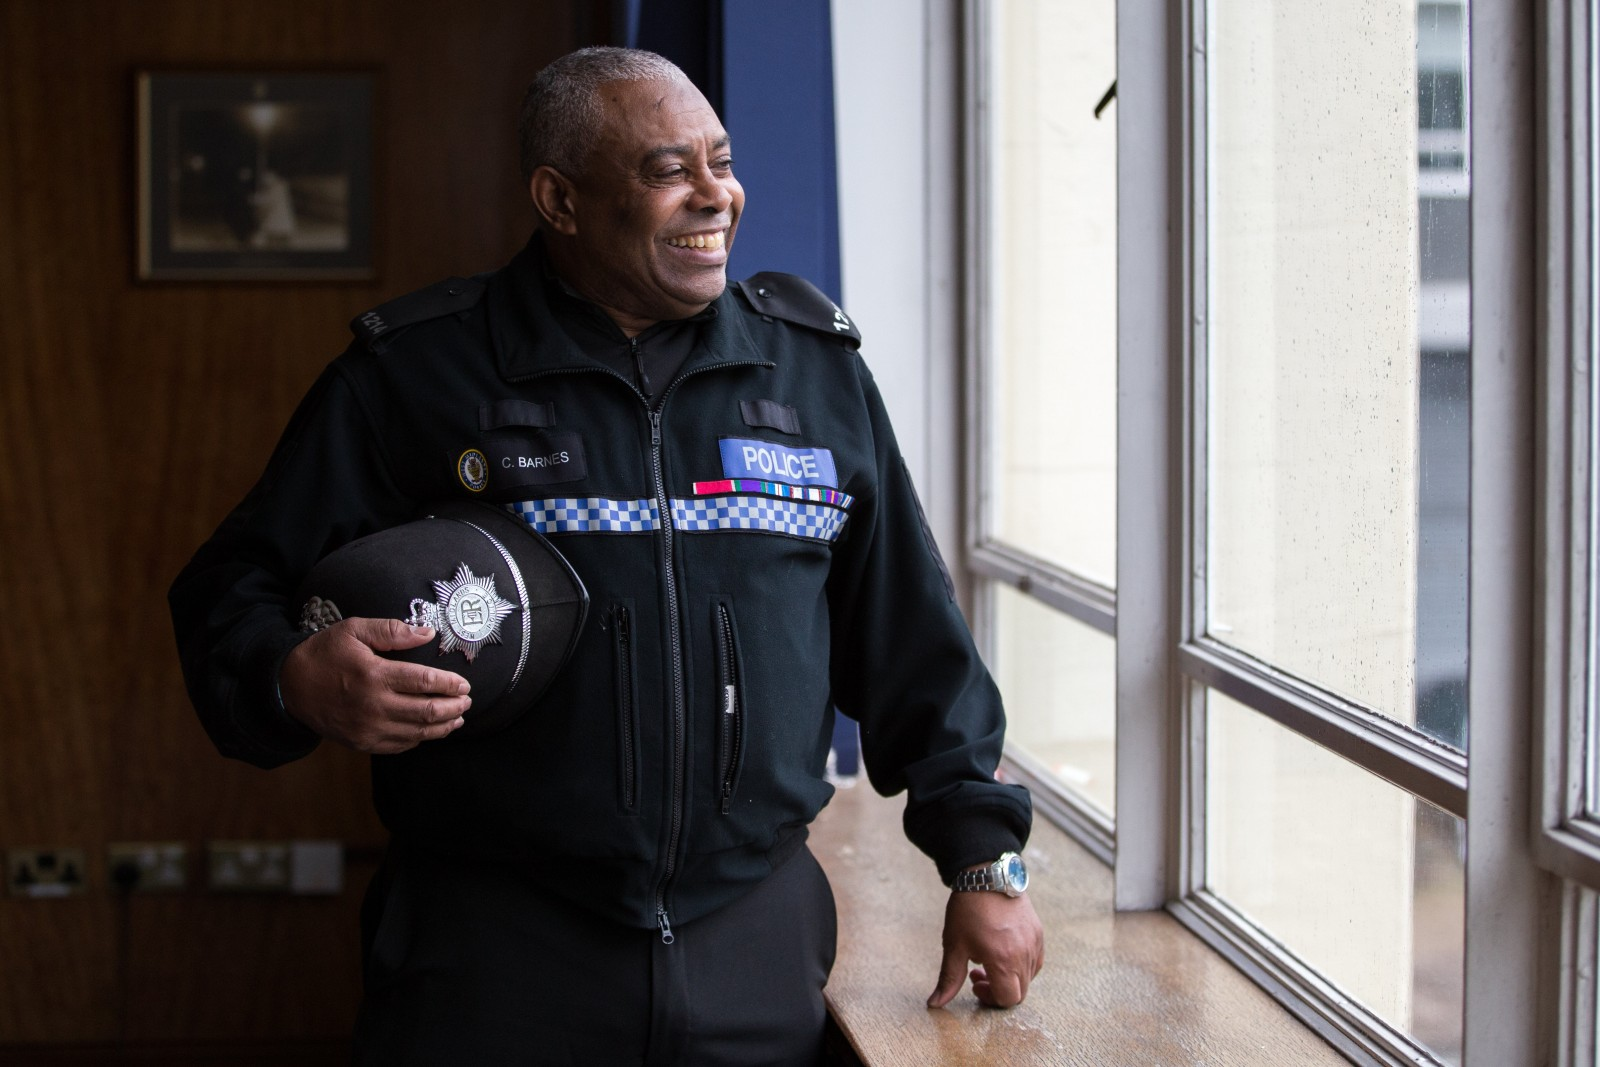 Britain's oldest policeman on the beat at 66 is finally hanging up his truncheon